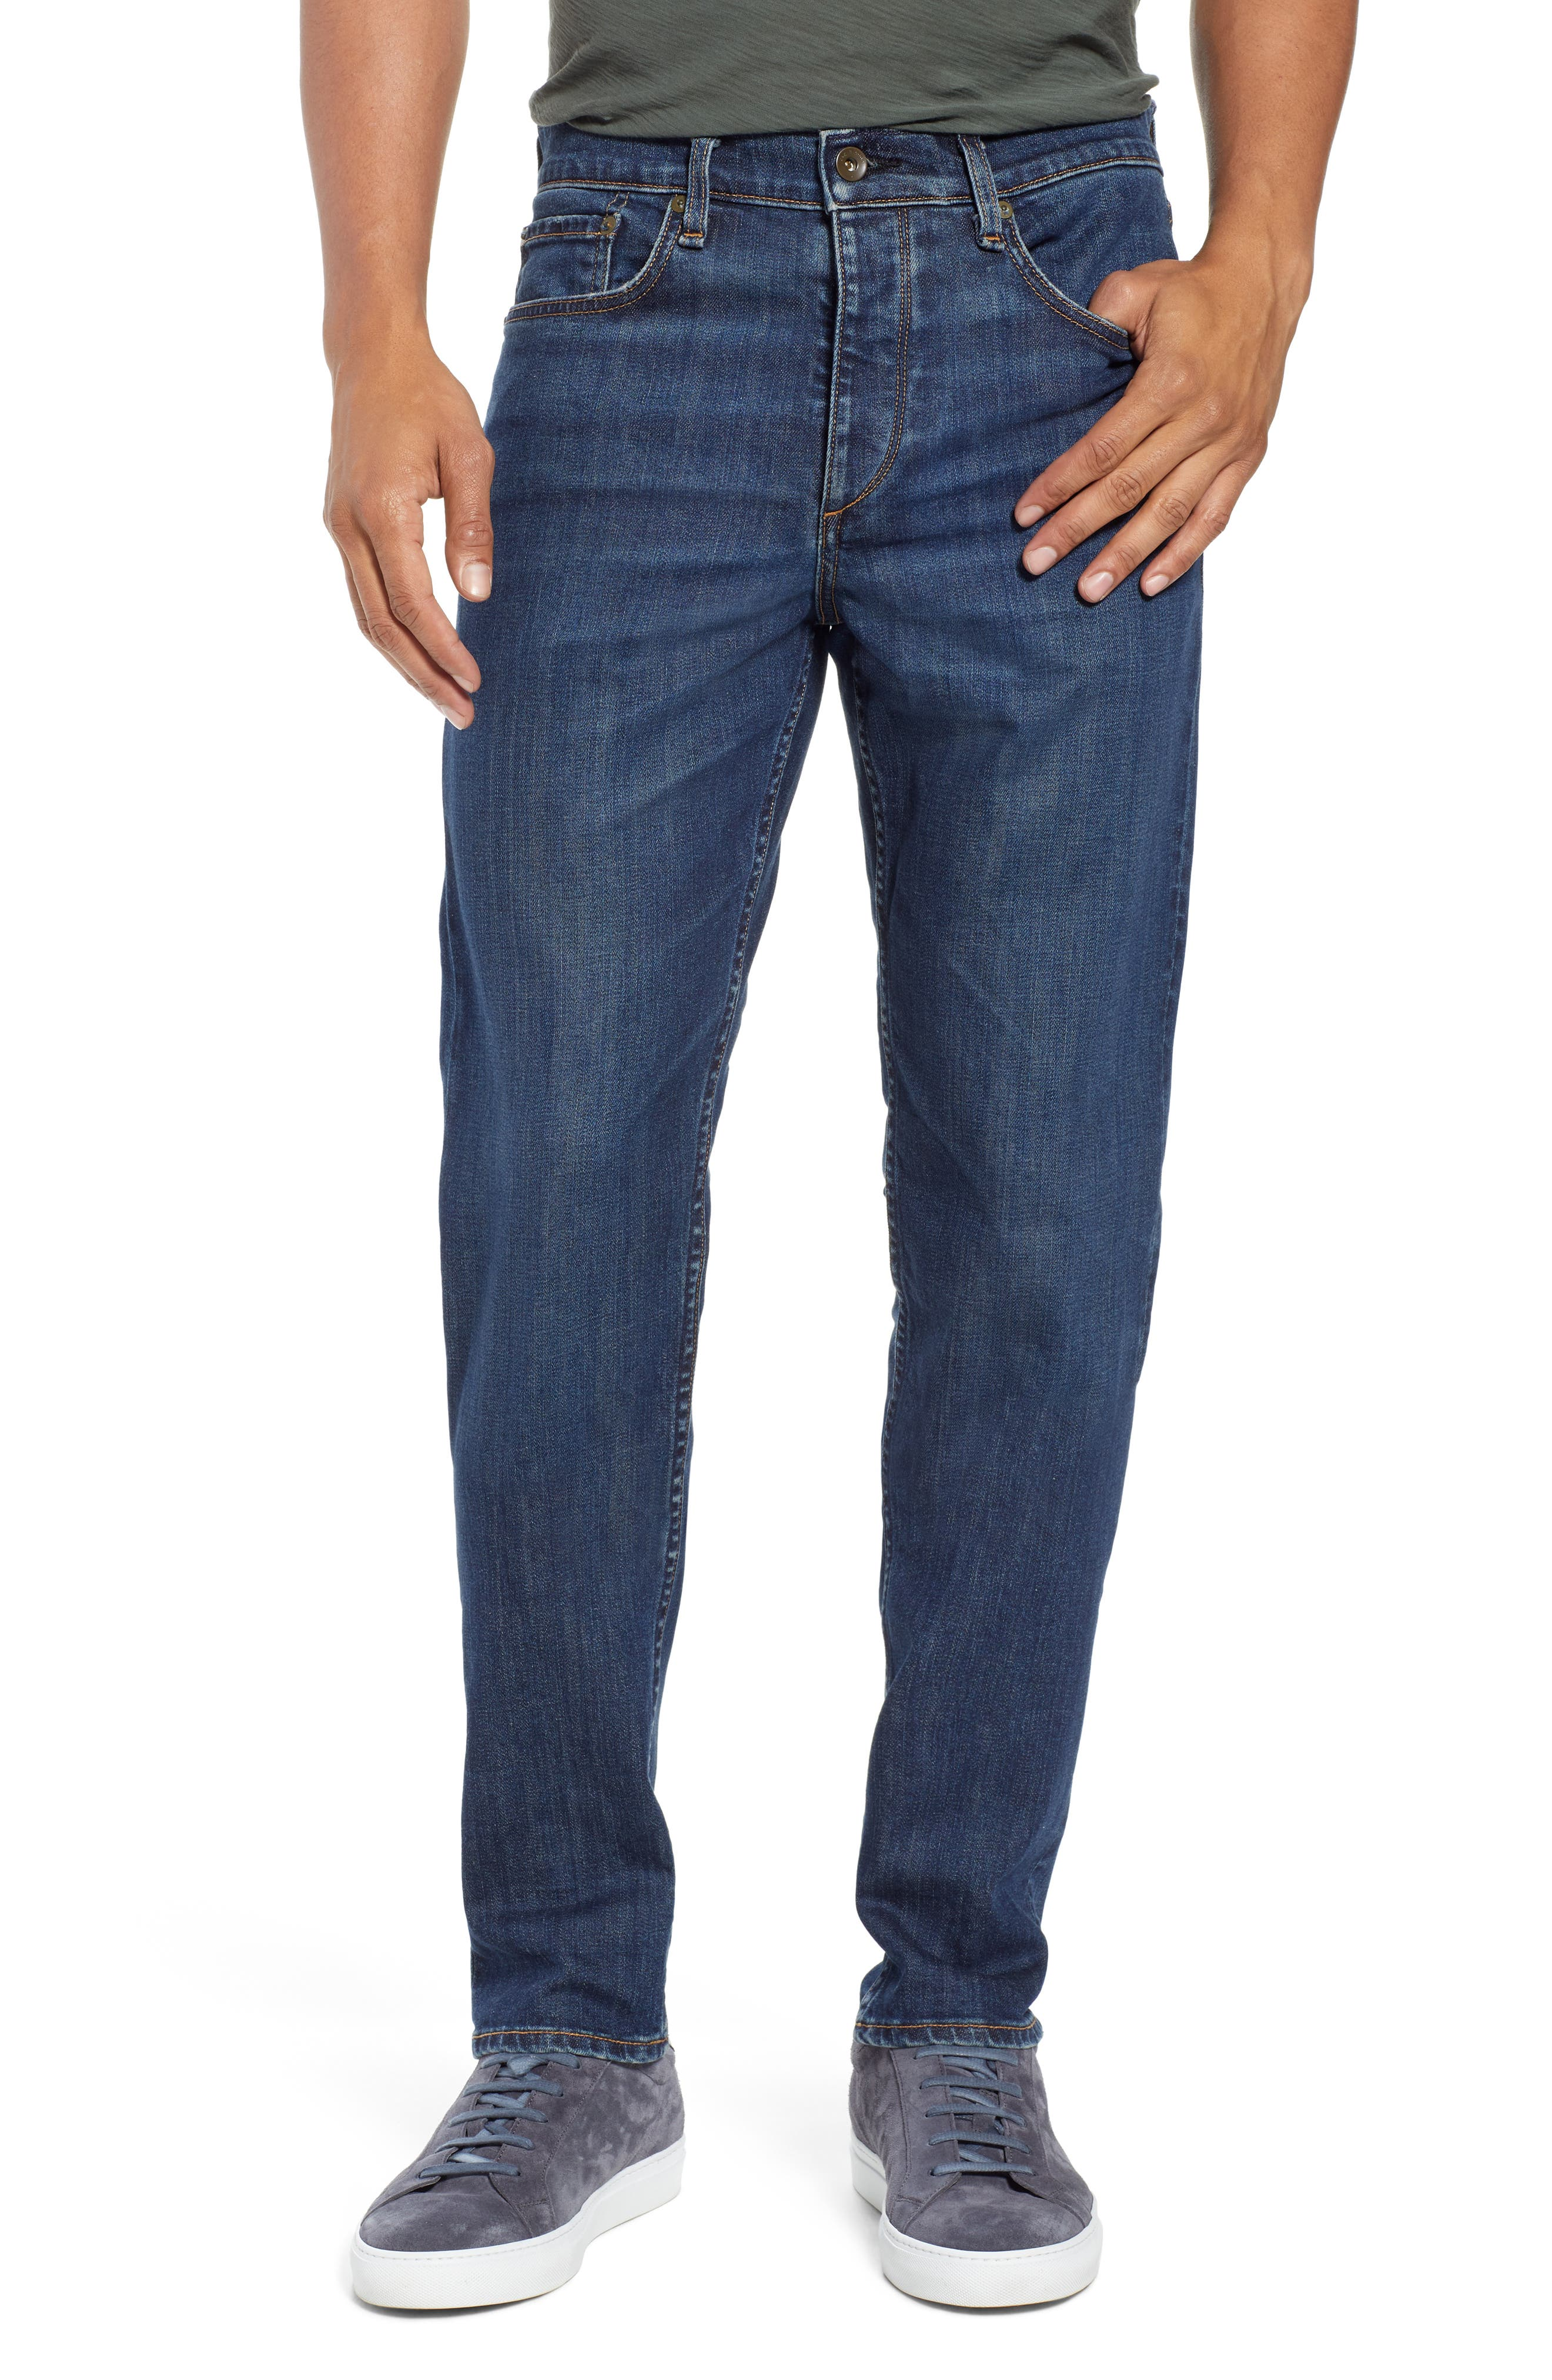 Fit 2 Slim Fit Jeans,                             Main thumbnail 1, color,                             420